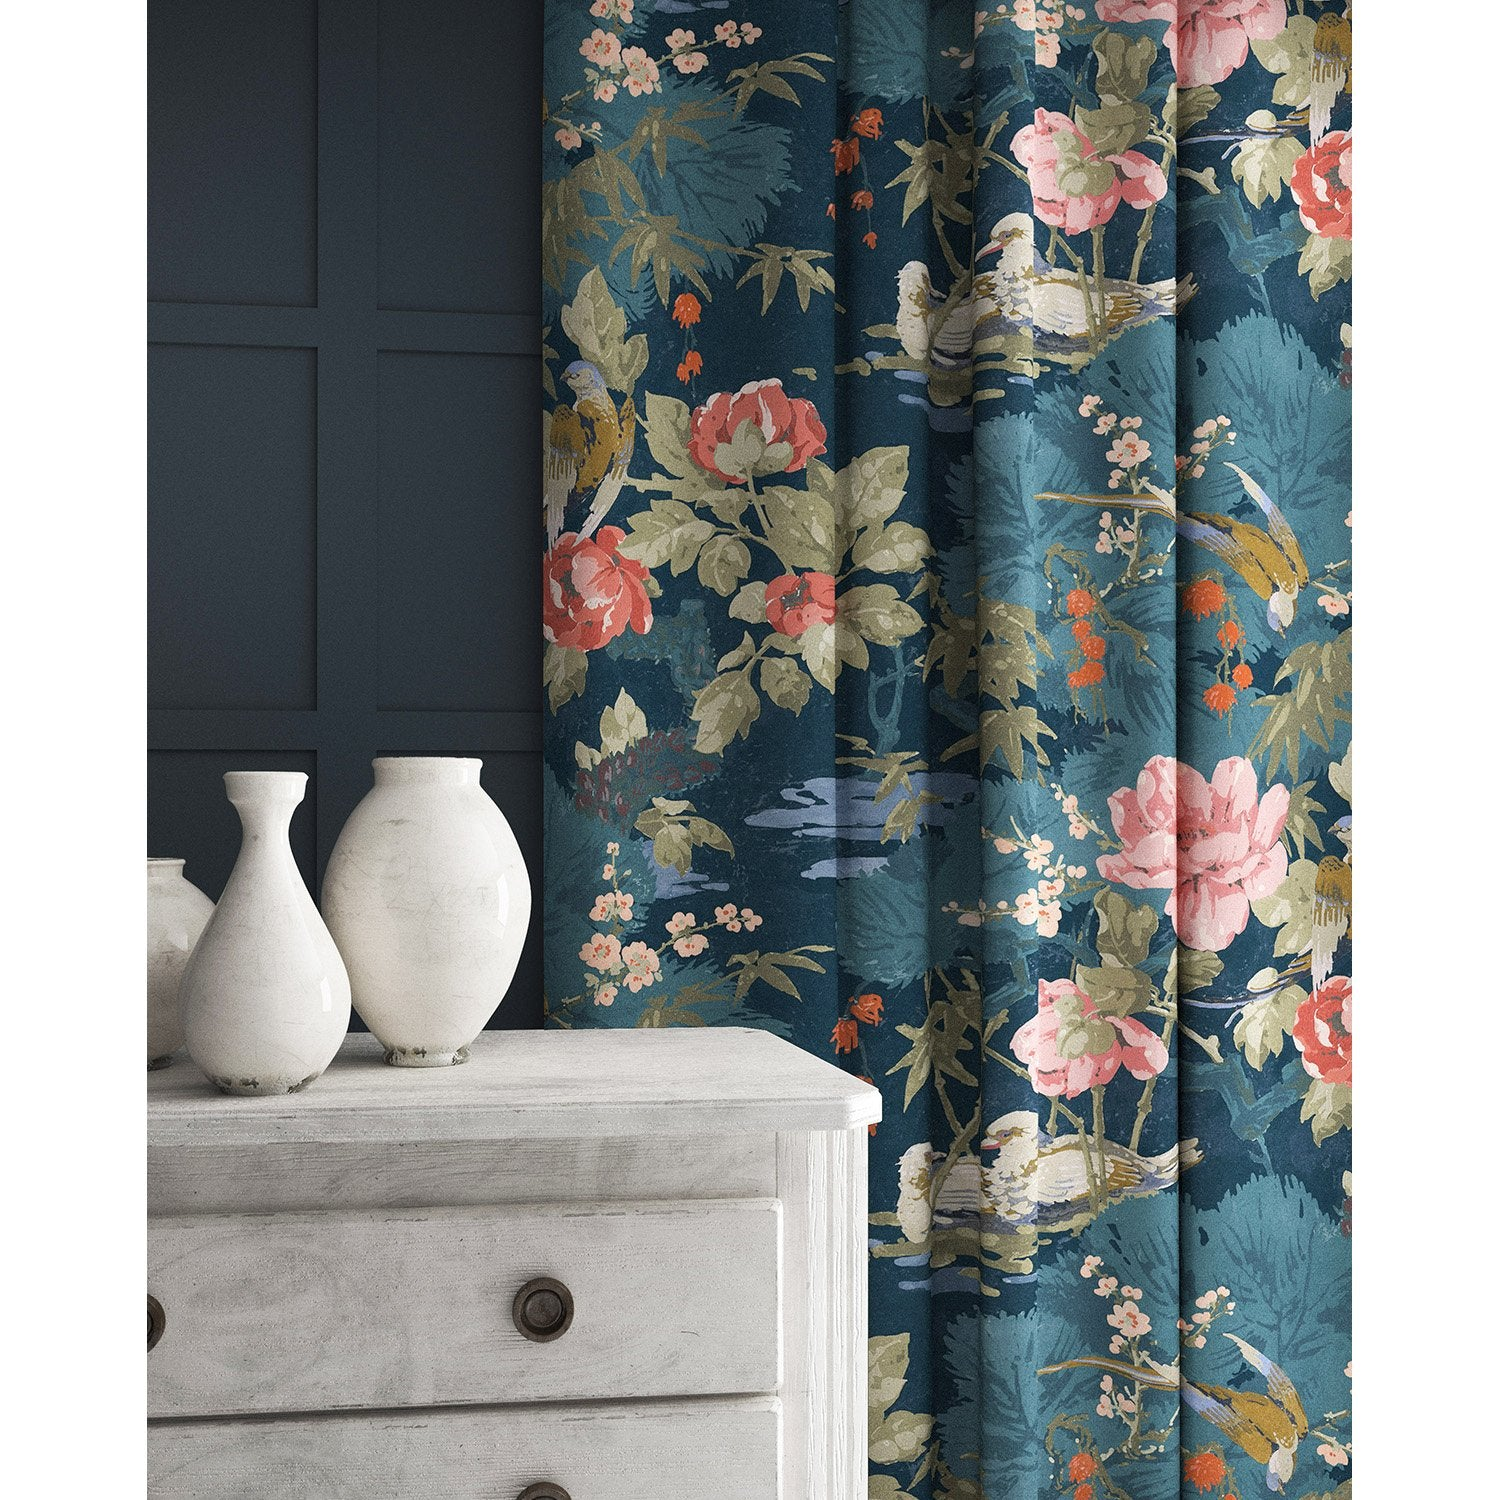 Velvet curtain in a blue velvet upholstery fabric with floral and bird design with a stain resistant finish